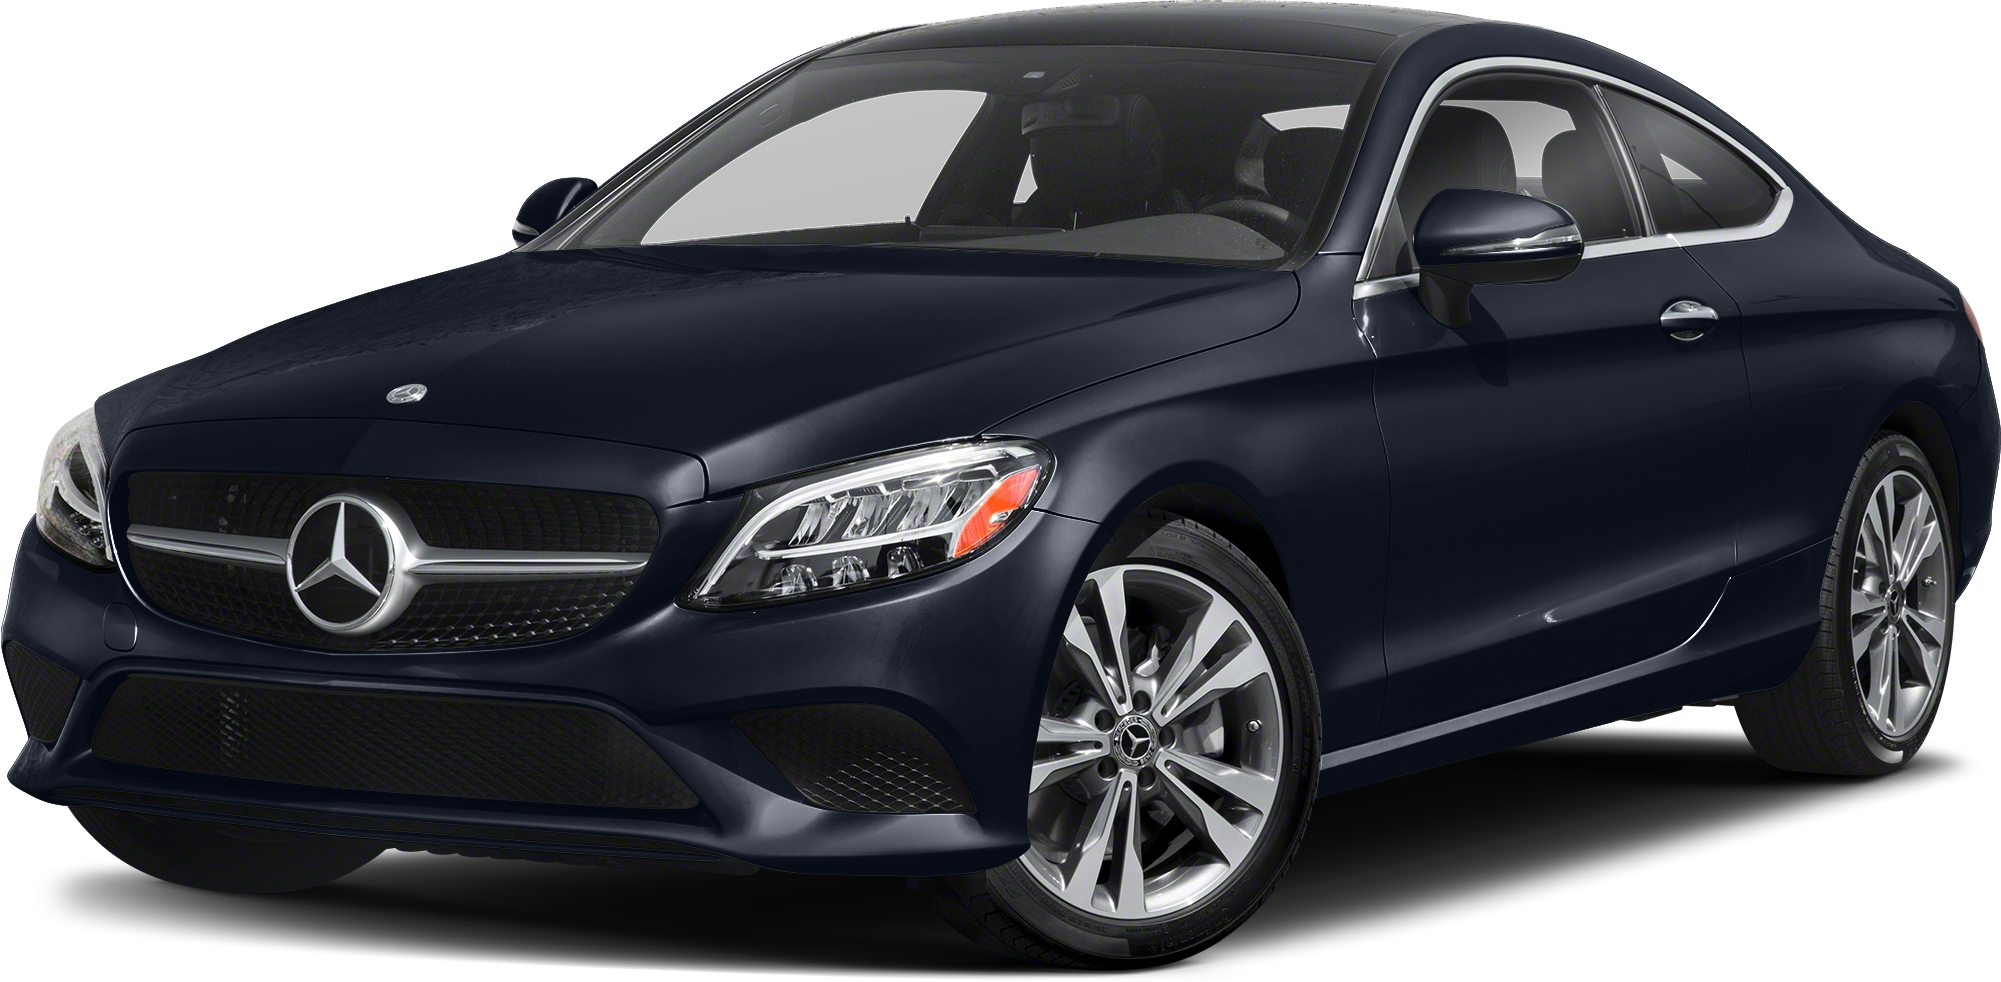 Mercedes Benz Of Morristown >> Vehicle details - 2019 Mercedes-Benz C at Mercedes-Benz of ...